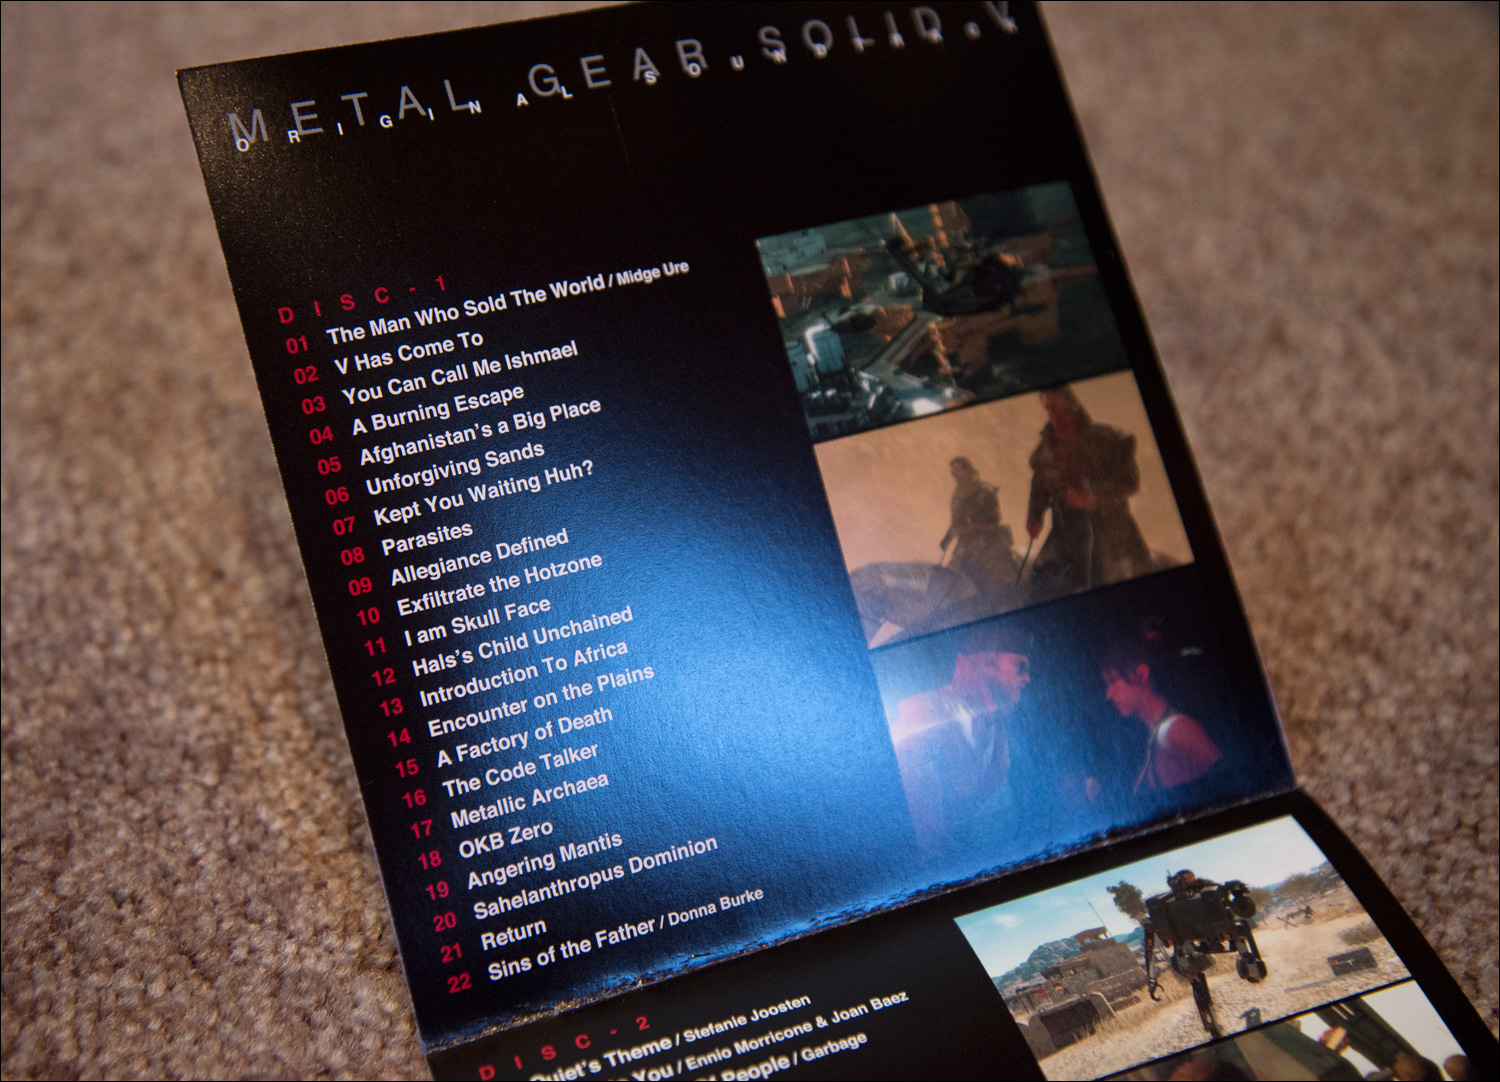 Metal-Gear-Solid-V-Original-Soundtrack-Tracklist-Disc-1